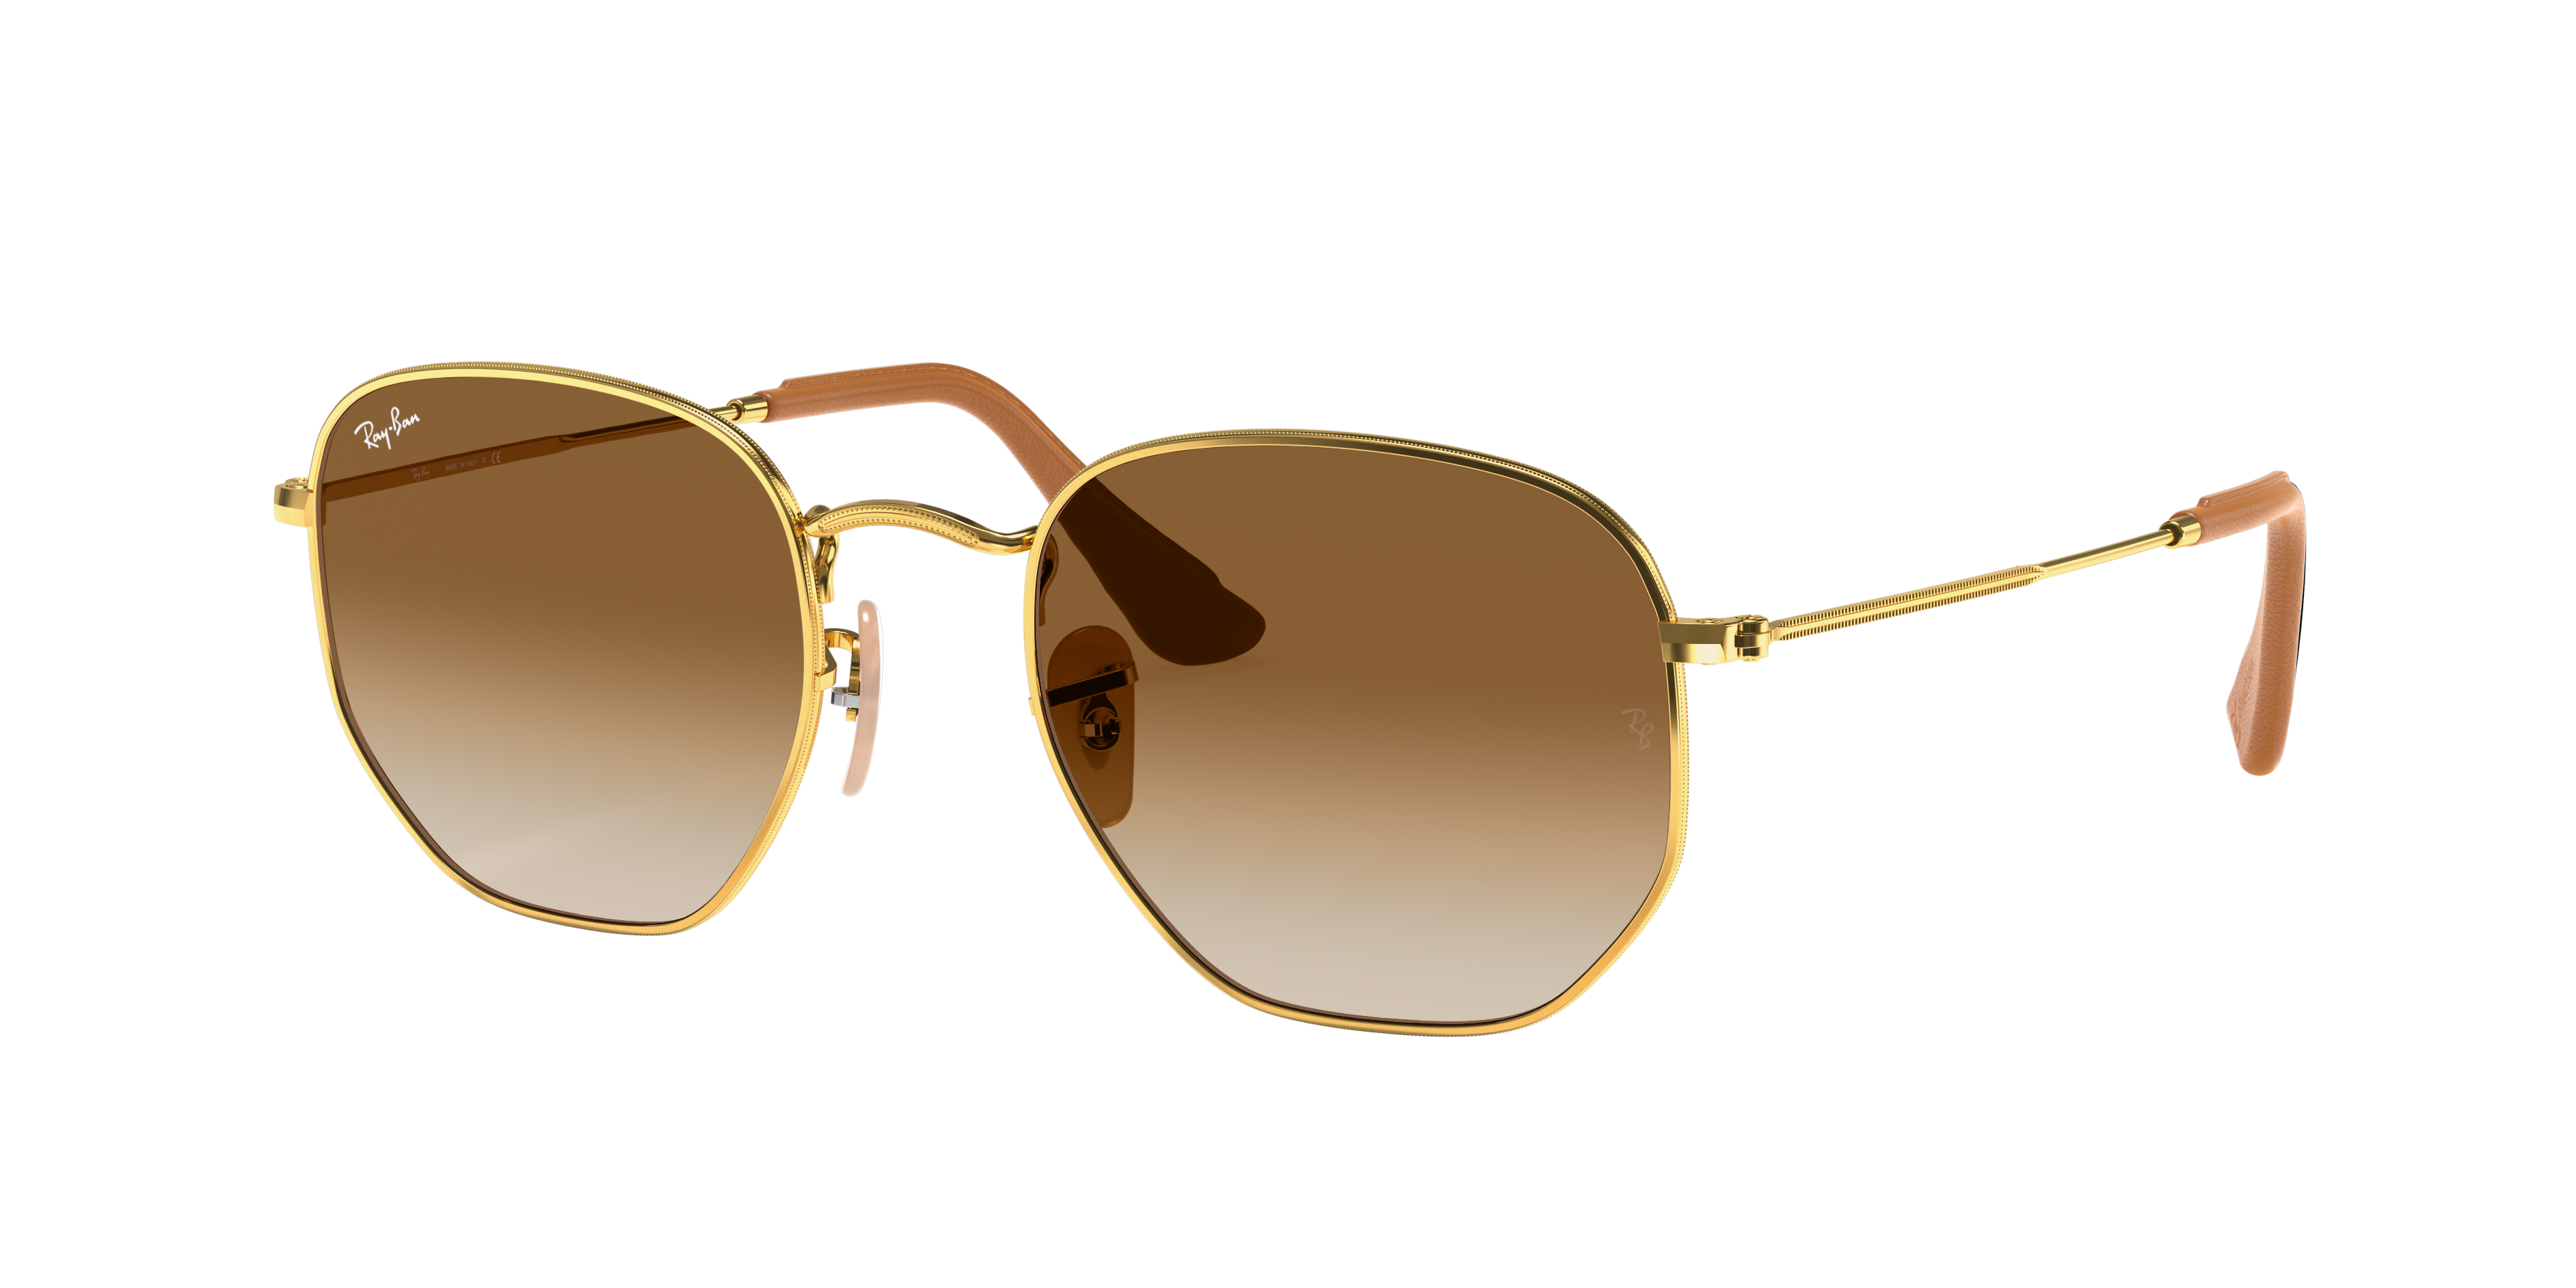 Ray-Ban Hexagonal @collection Gold, Brown Lenses - RB3548N